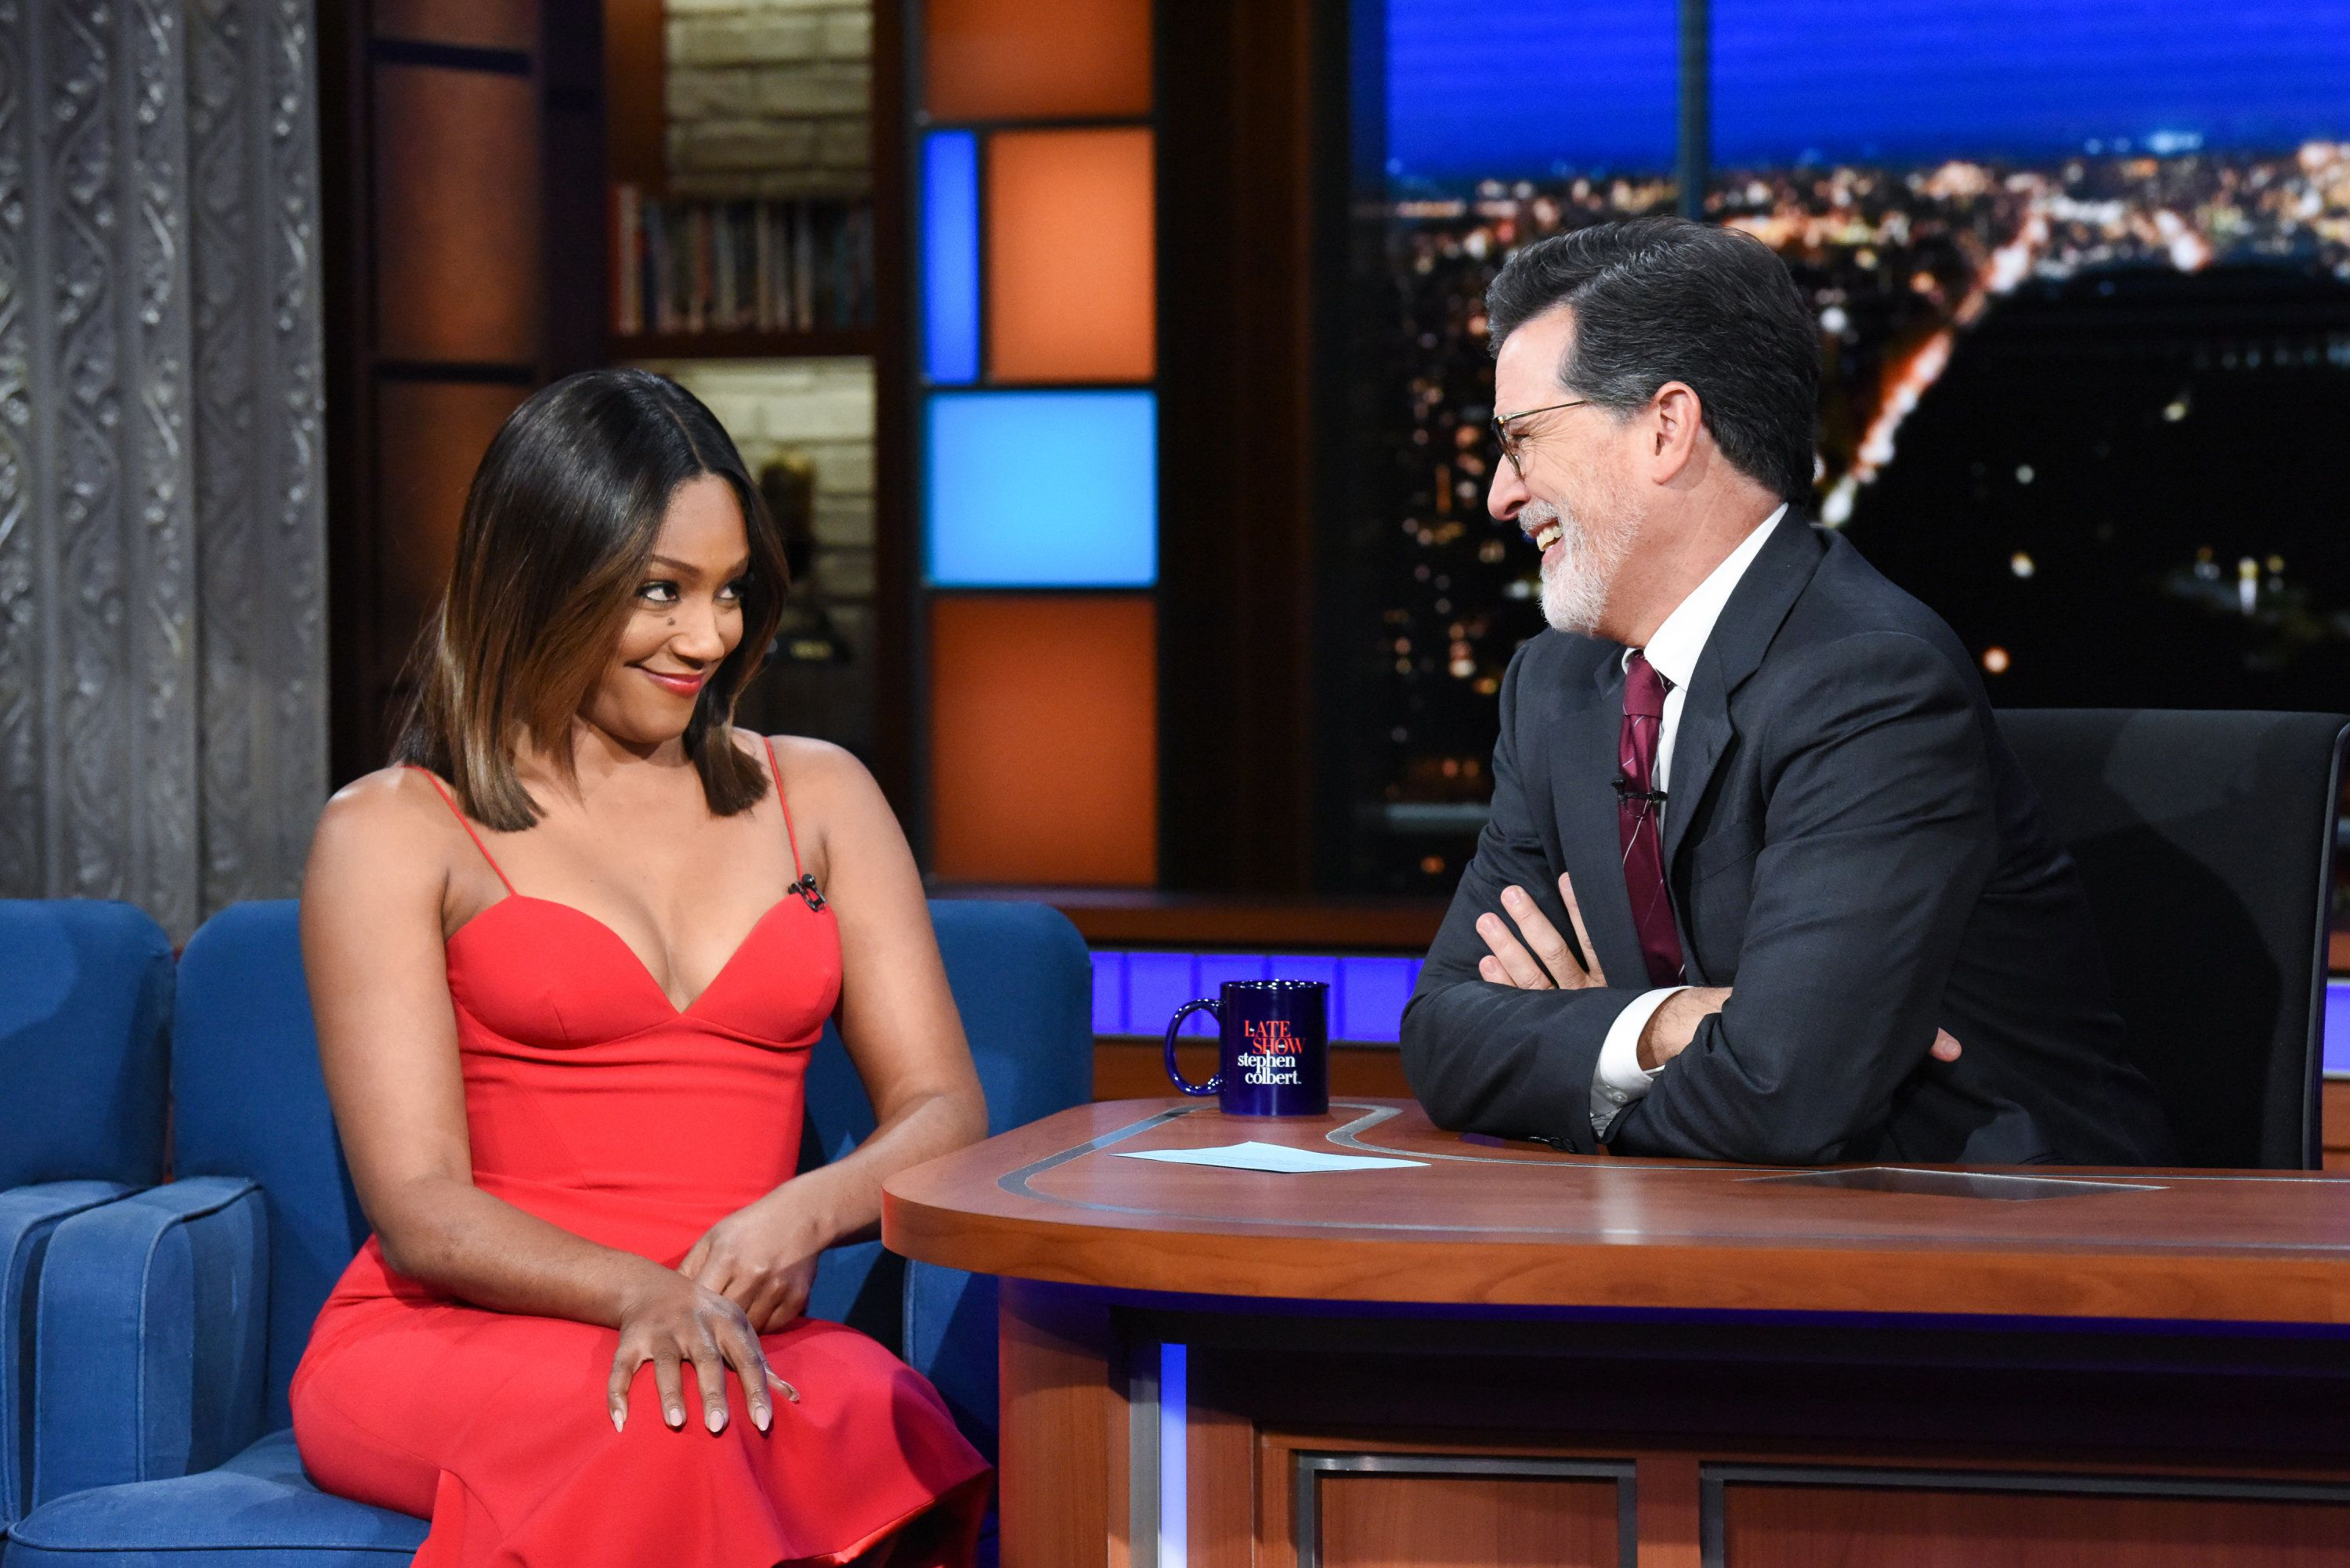 NEW YORK - SEPTEMBER 20: The Late Show with Stephen Colbert and guest Tiffany Haddish during Thursday's September 20, 2018 show. (Photo by Scott Kowalchyk/CBS via Getty Images)